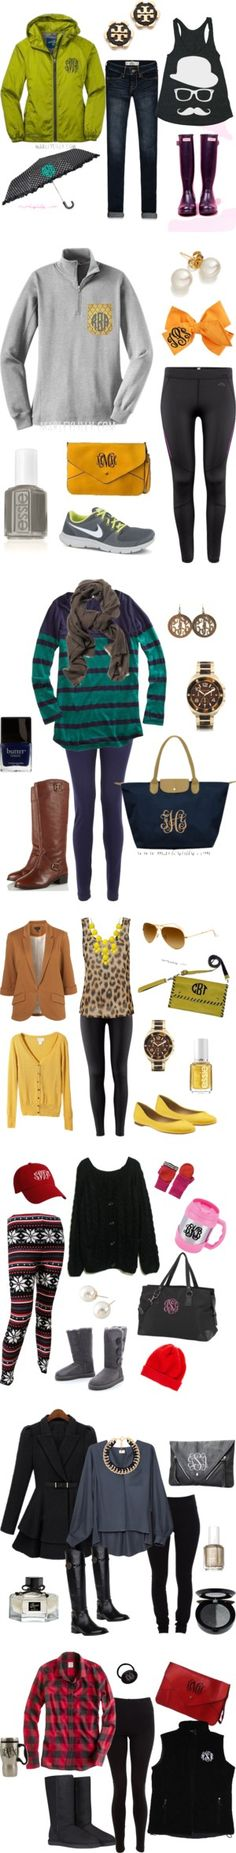 obsessed. Adorable outfits. Monograms